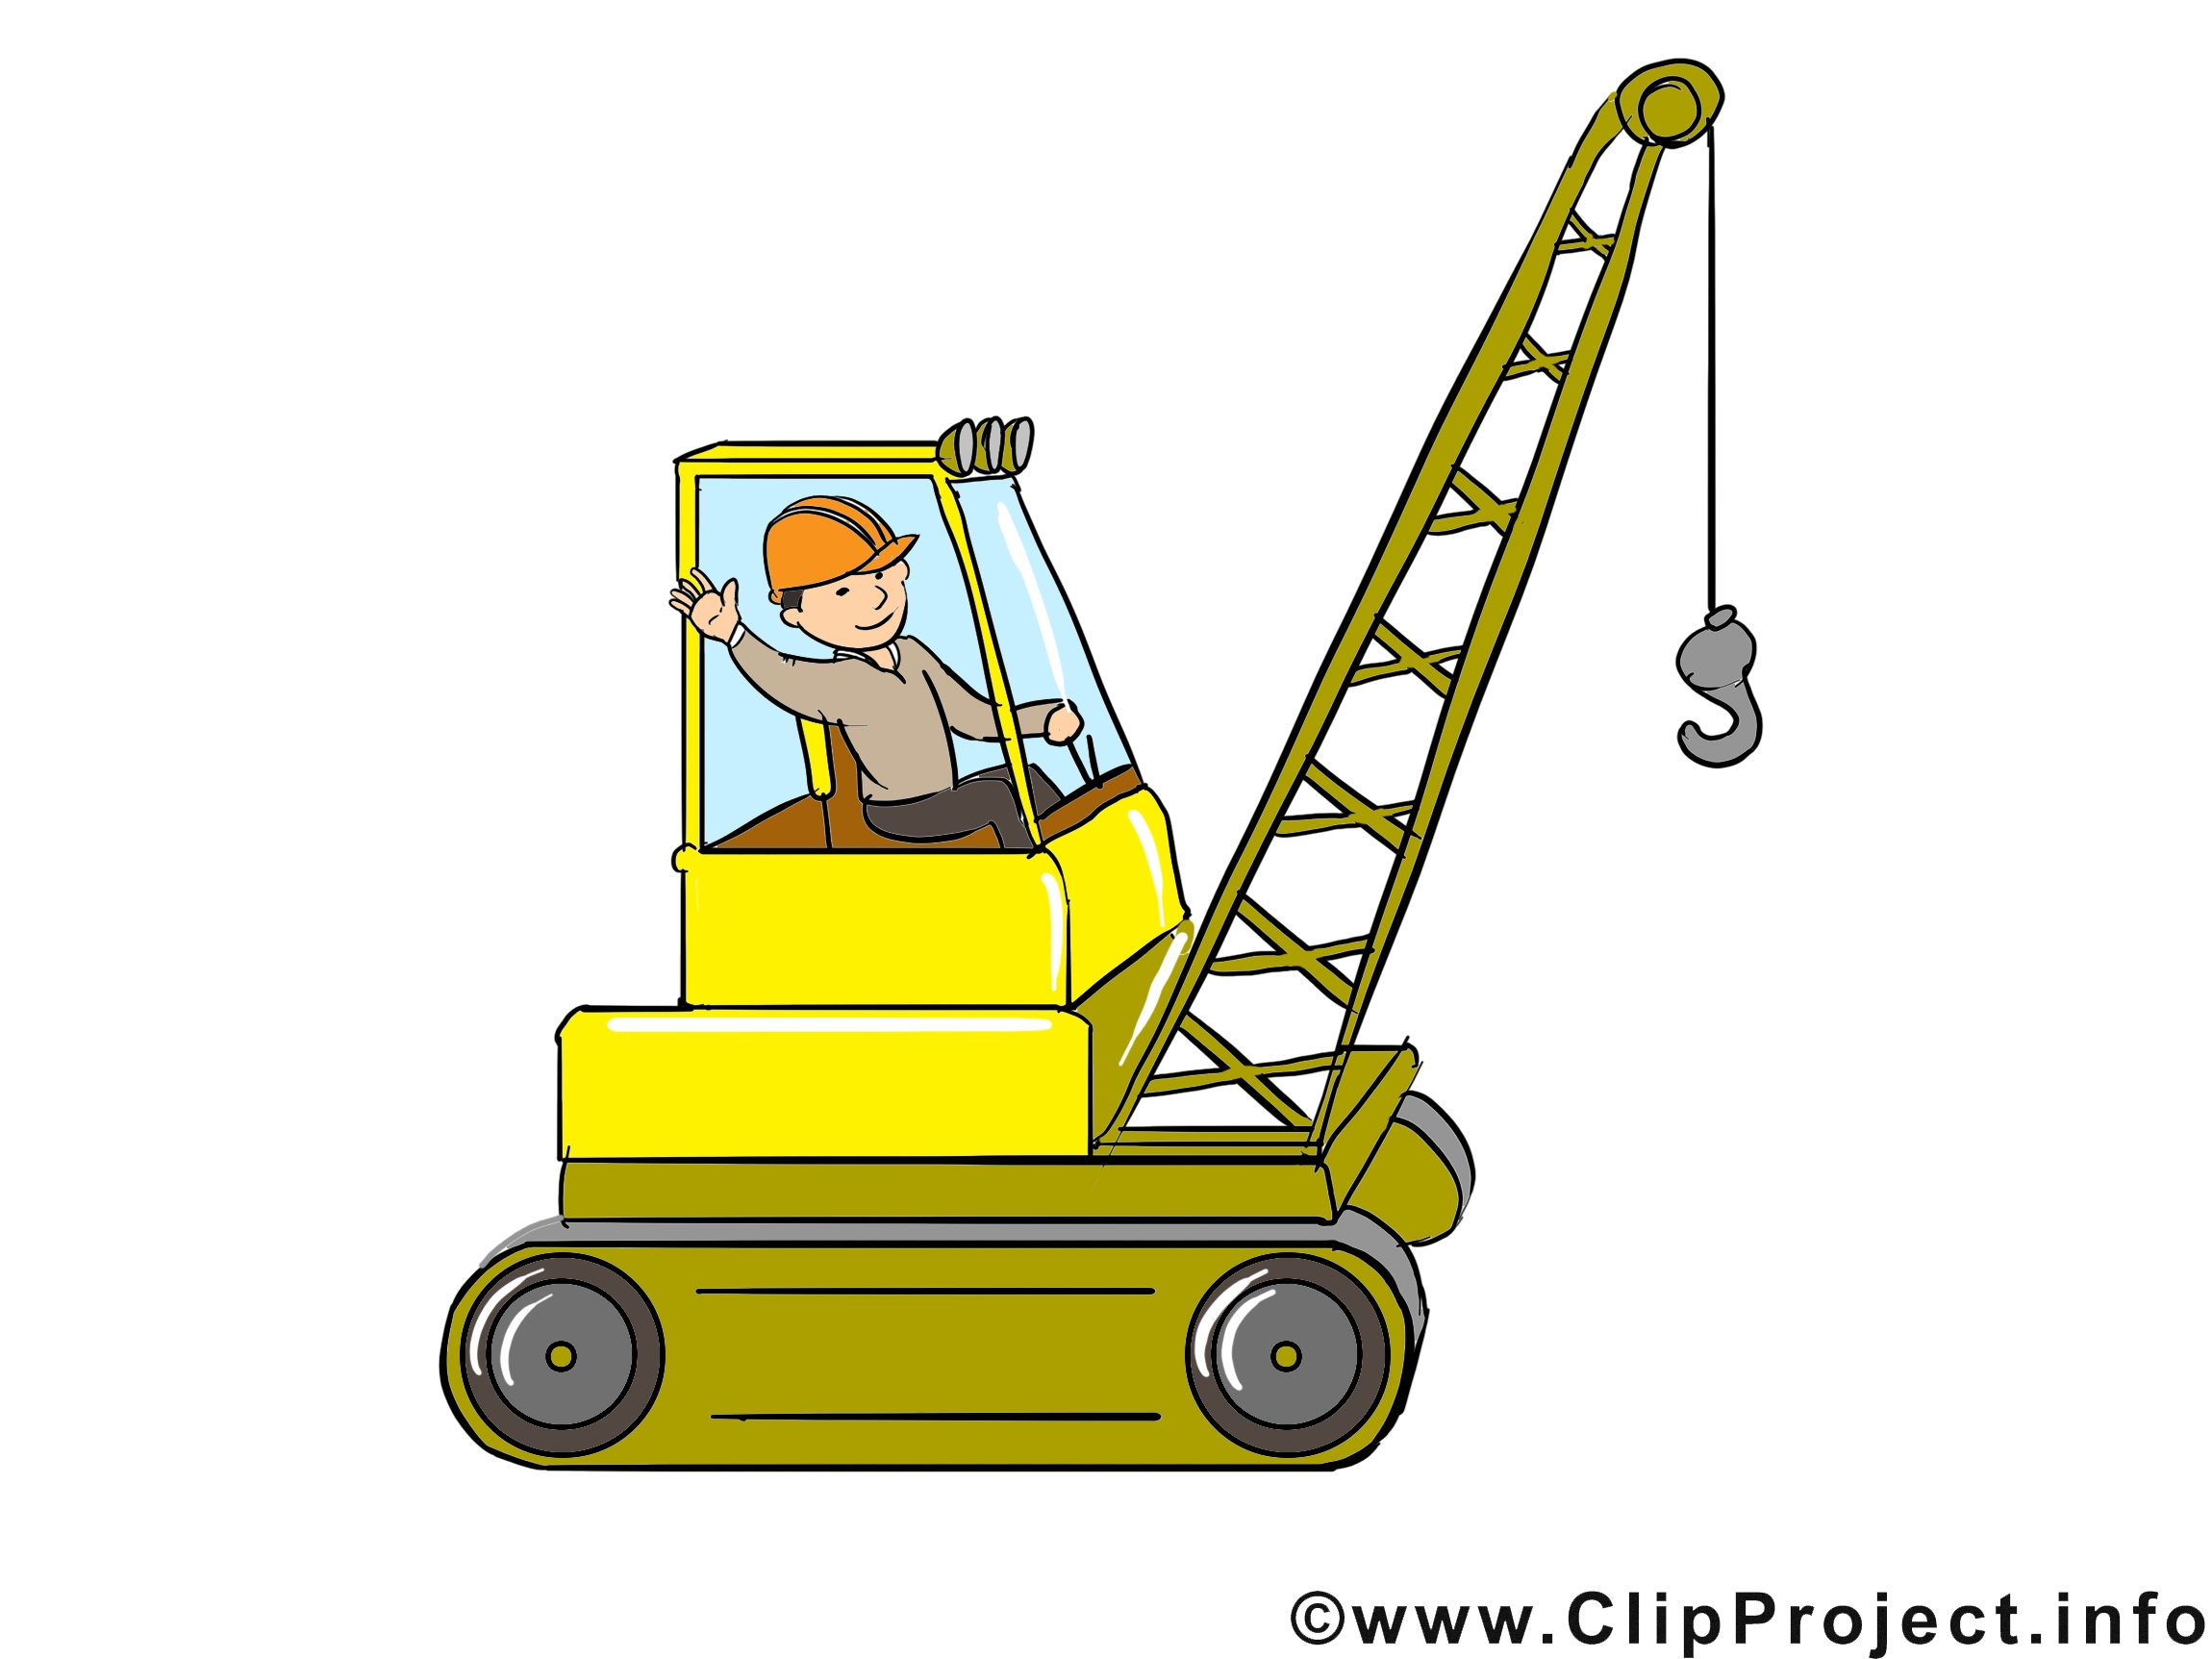 Building Coloring Pages - Clipart Bagger Baustelle Baumeister